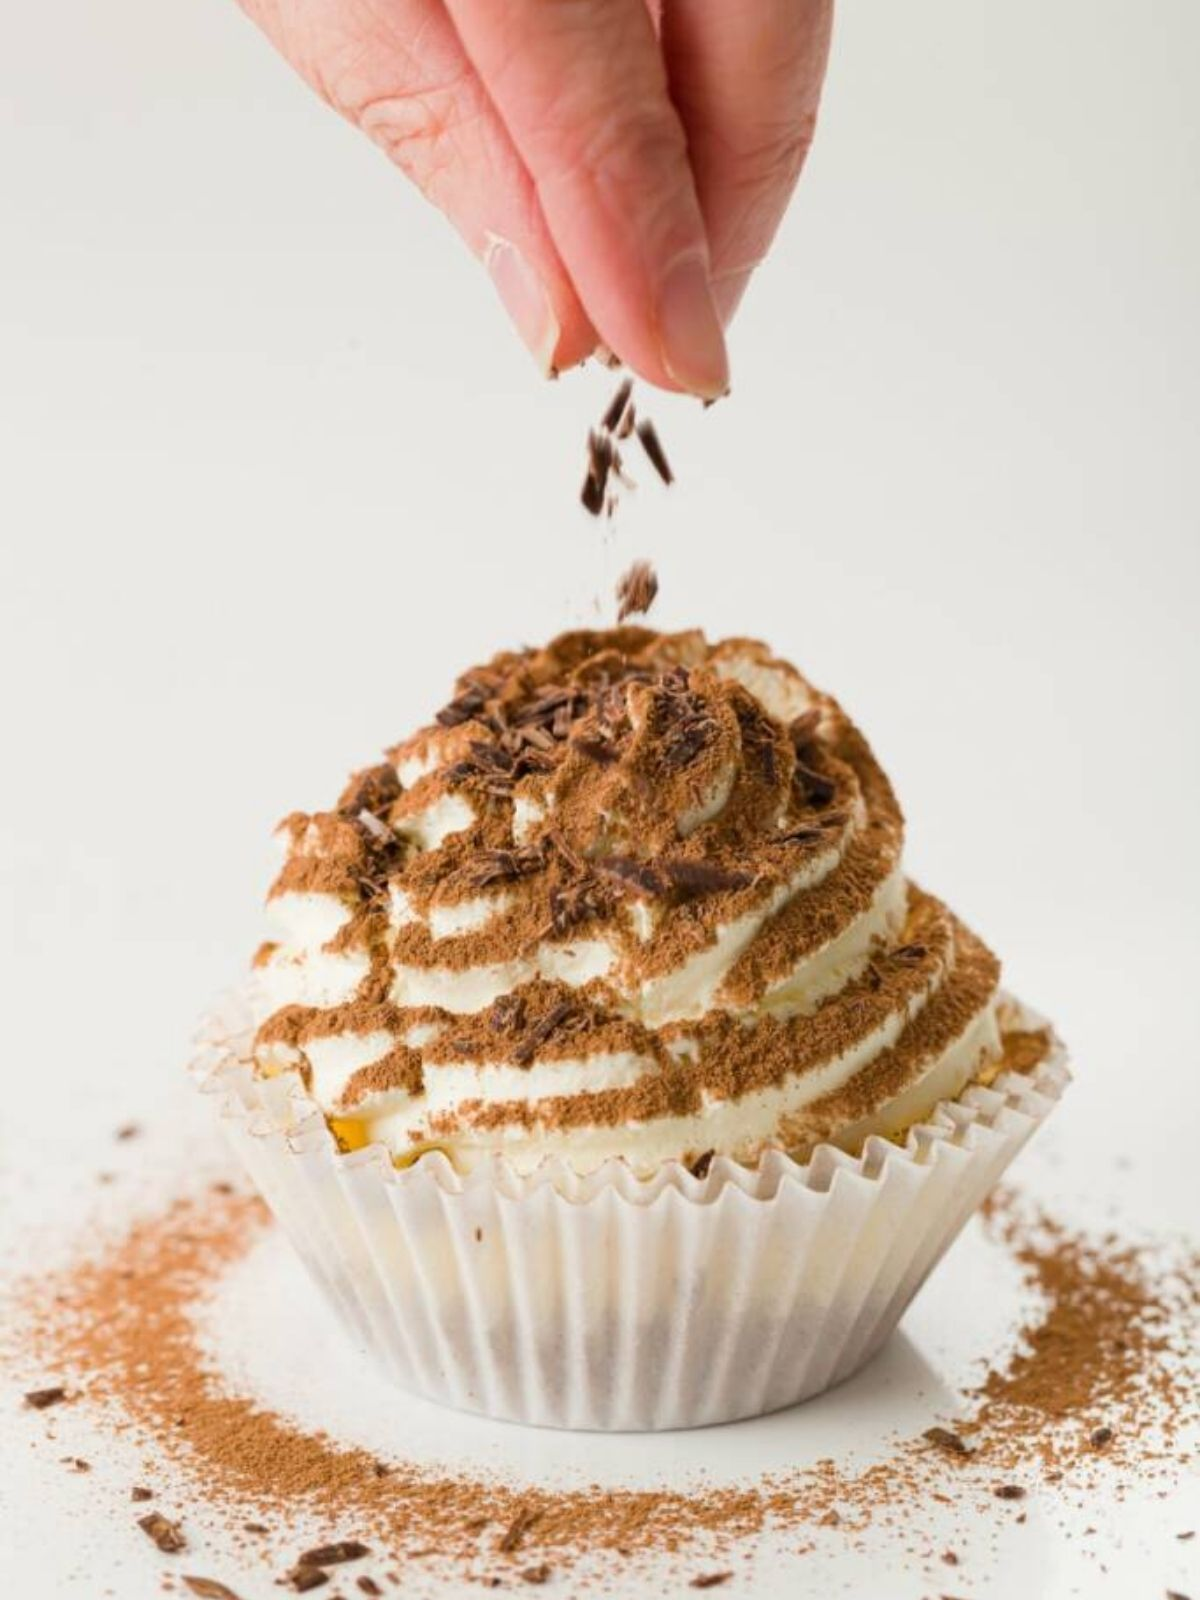 A tiramisu cupcake being topped with chocolate shavings with a halo of cocoa powder around the bottom..